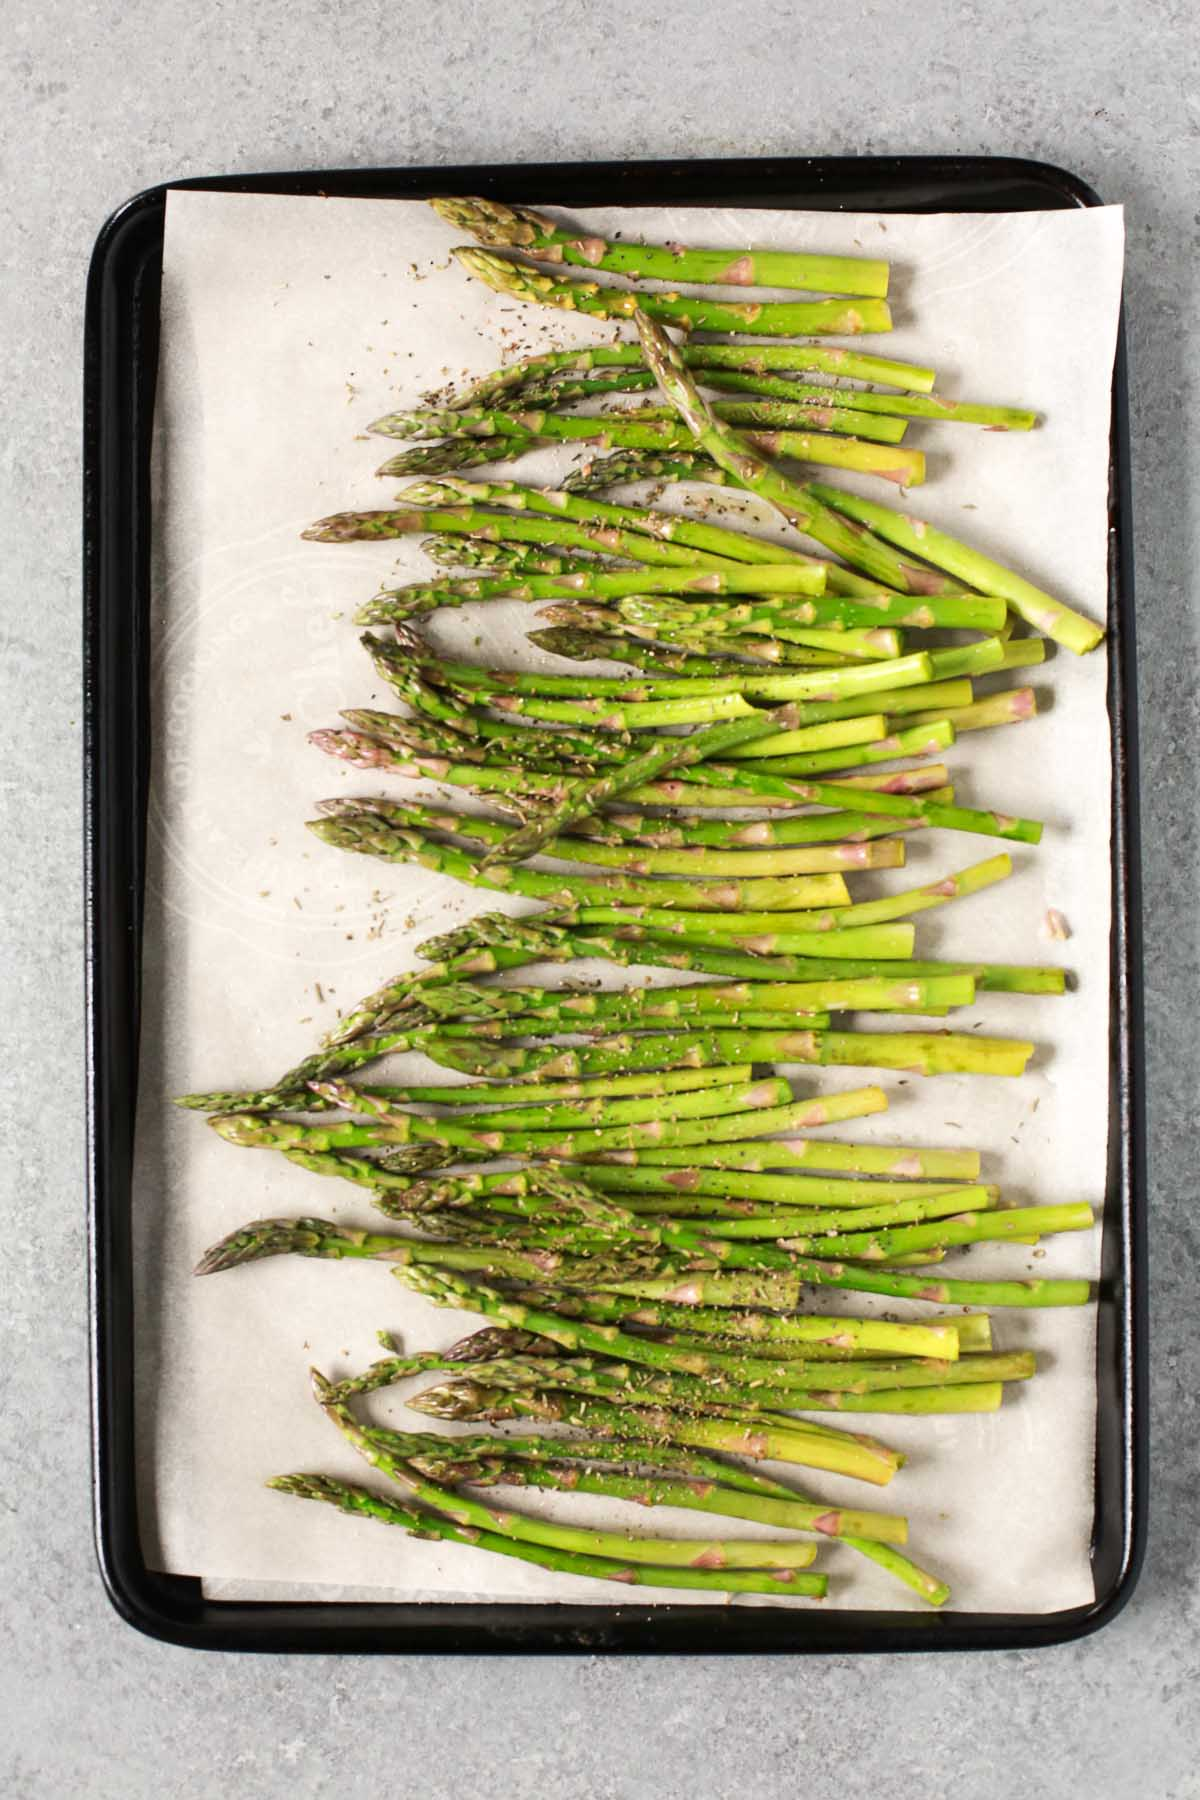 Seasoning asparagus on a sheet pan before roasting.